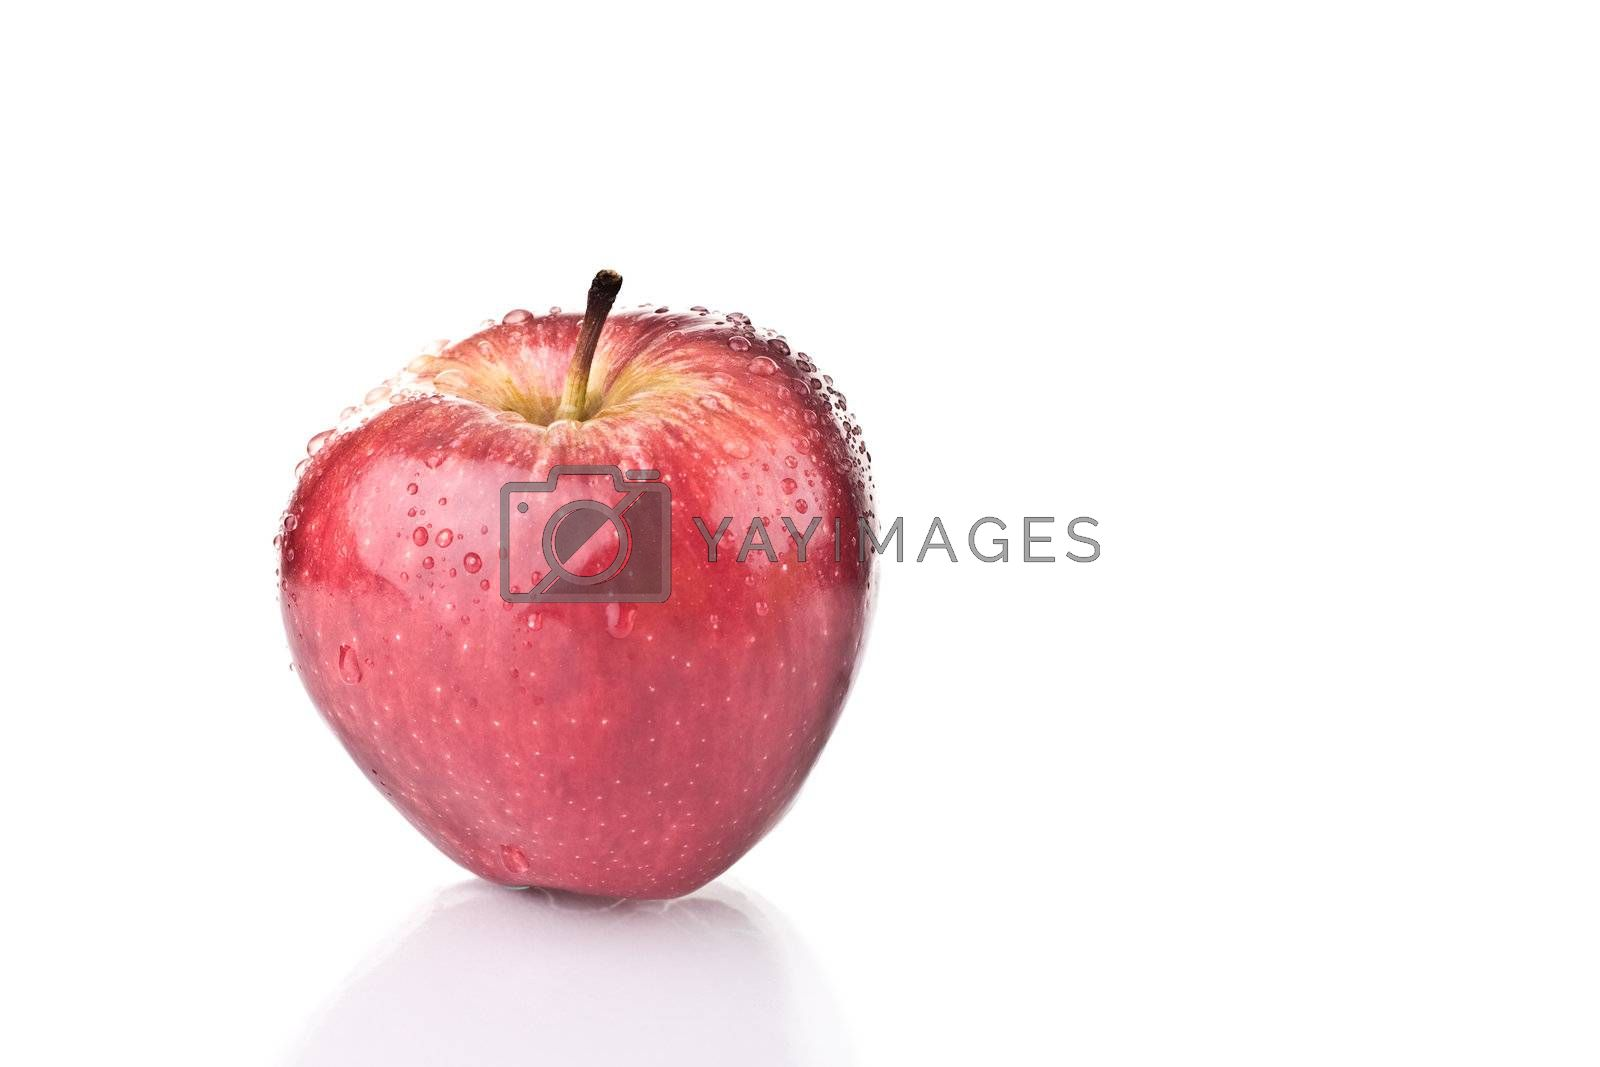 Royalty free image of Red Apple by ajn